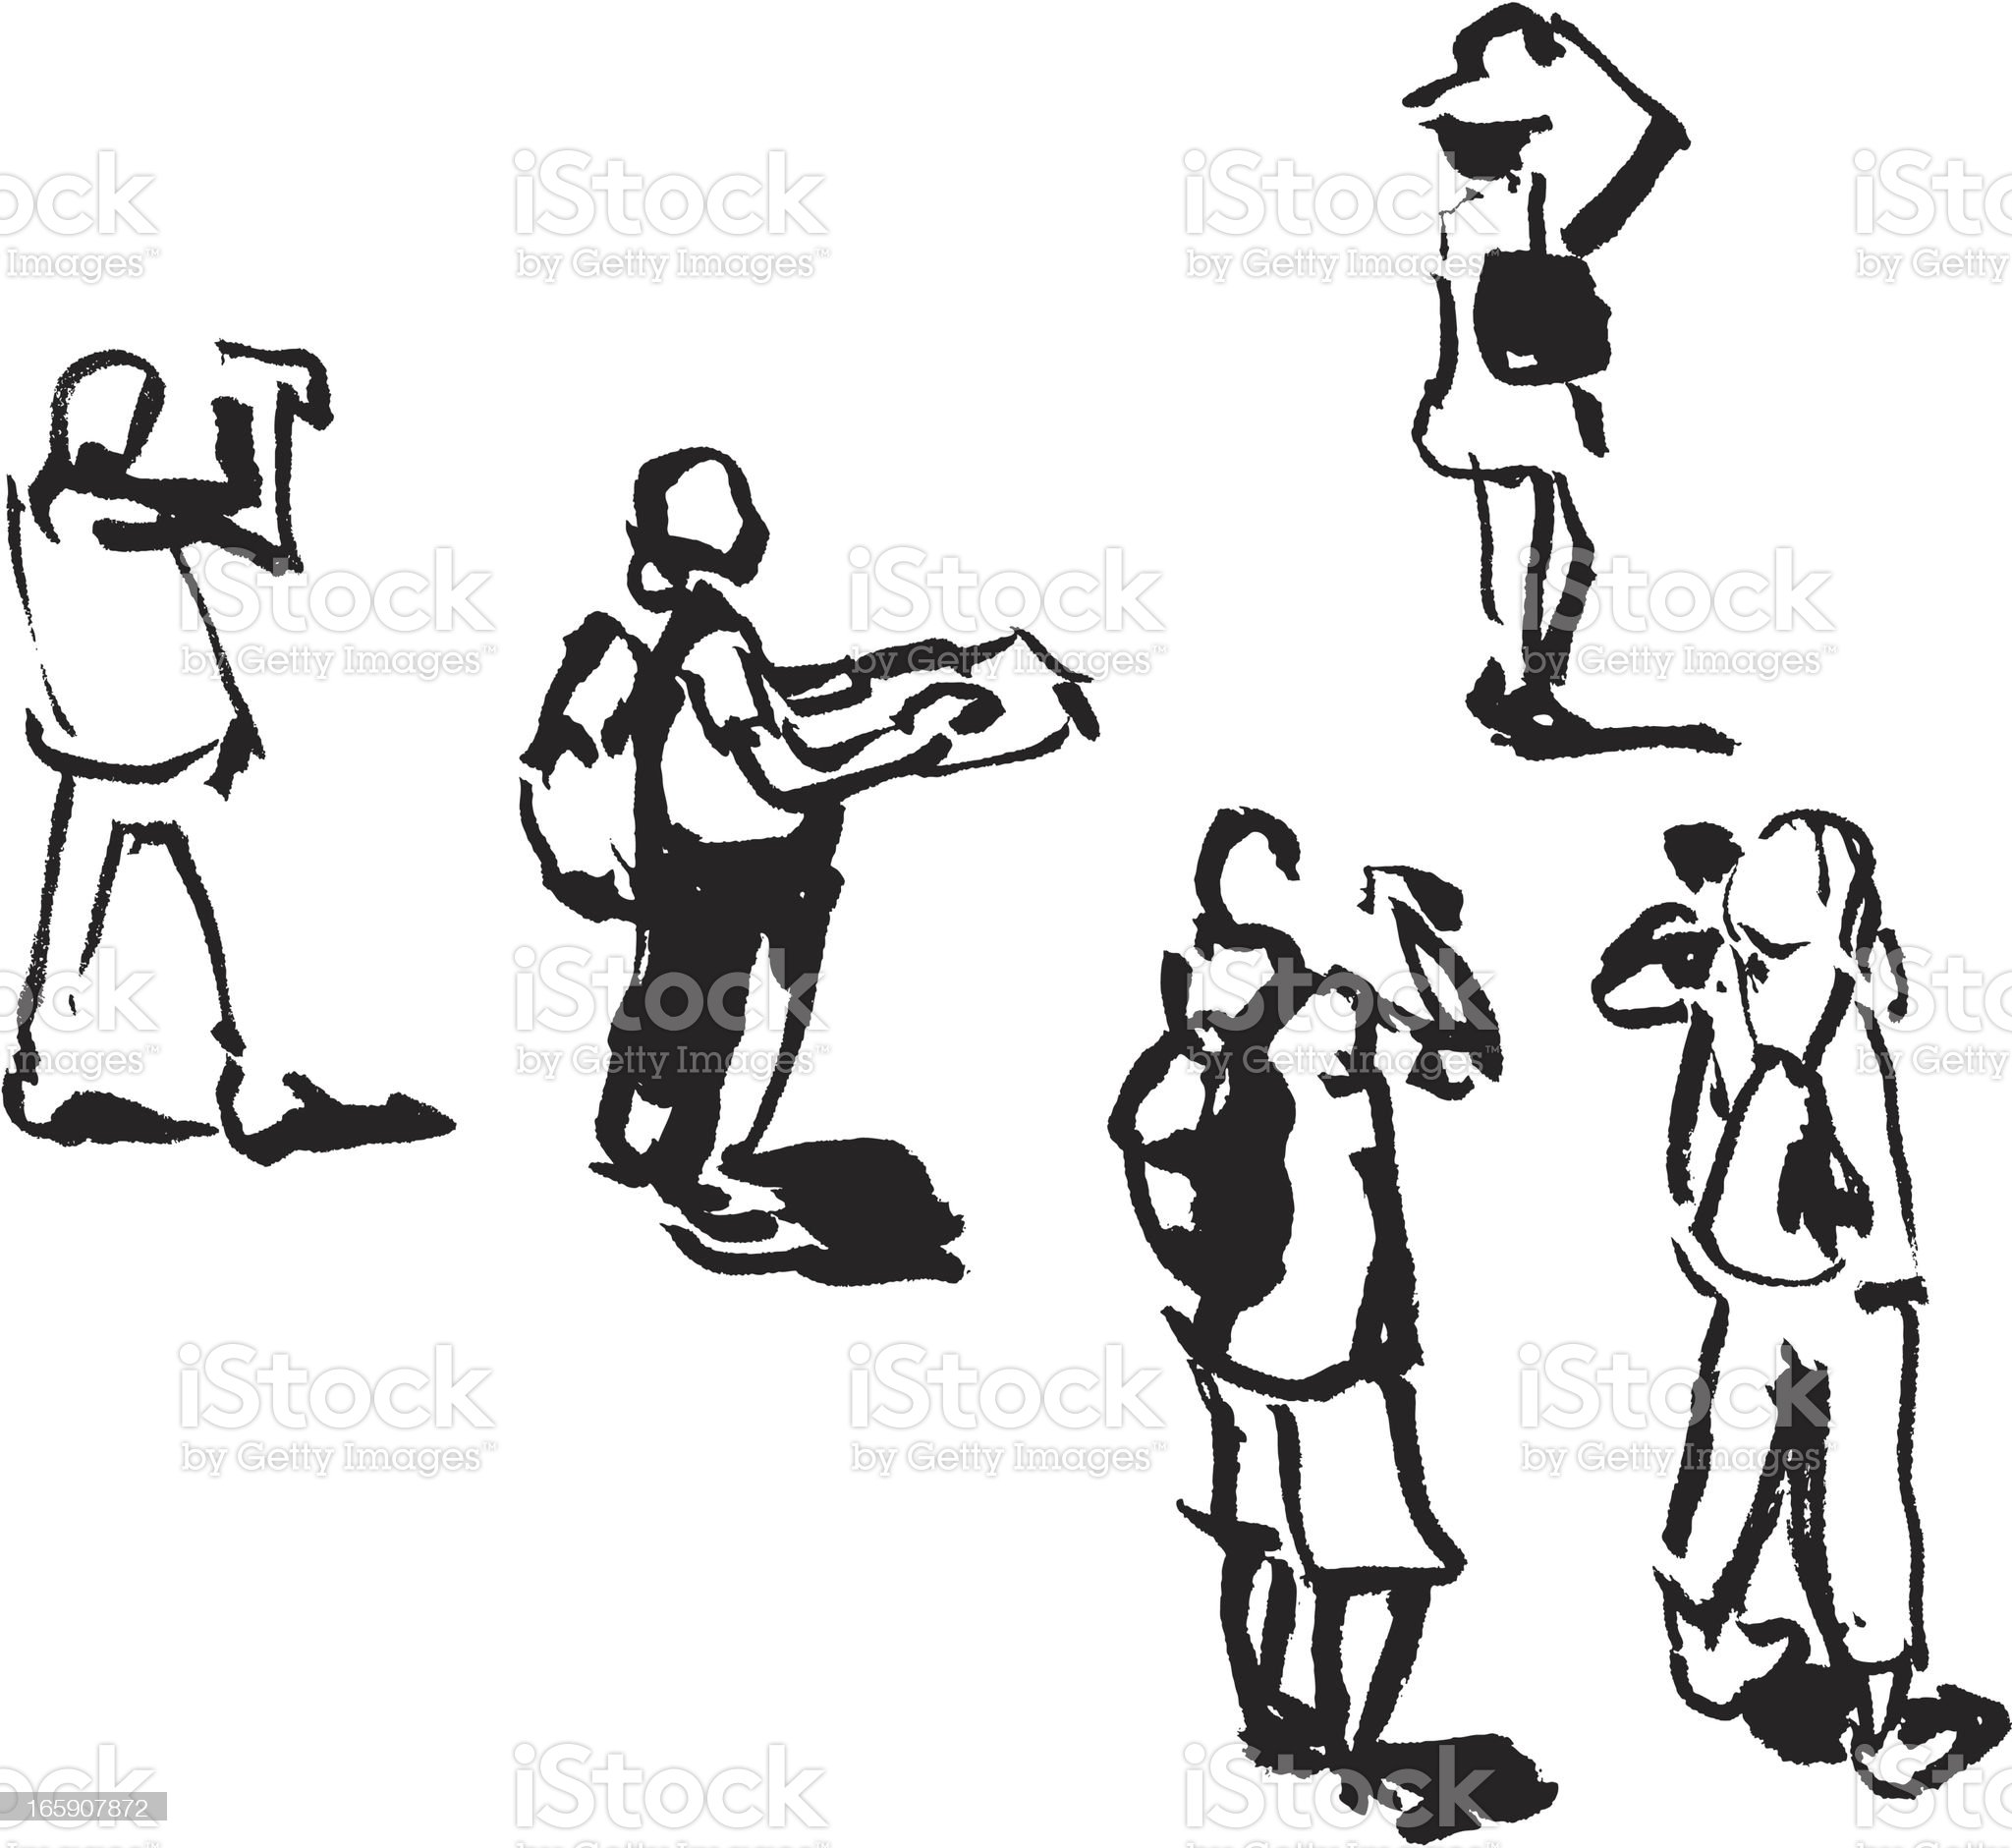 Tourist People Sketch royalty-free stock vector art